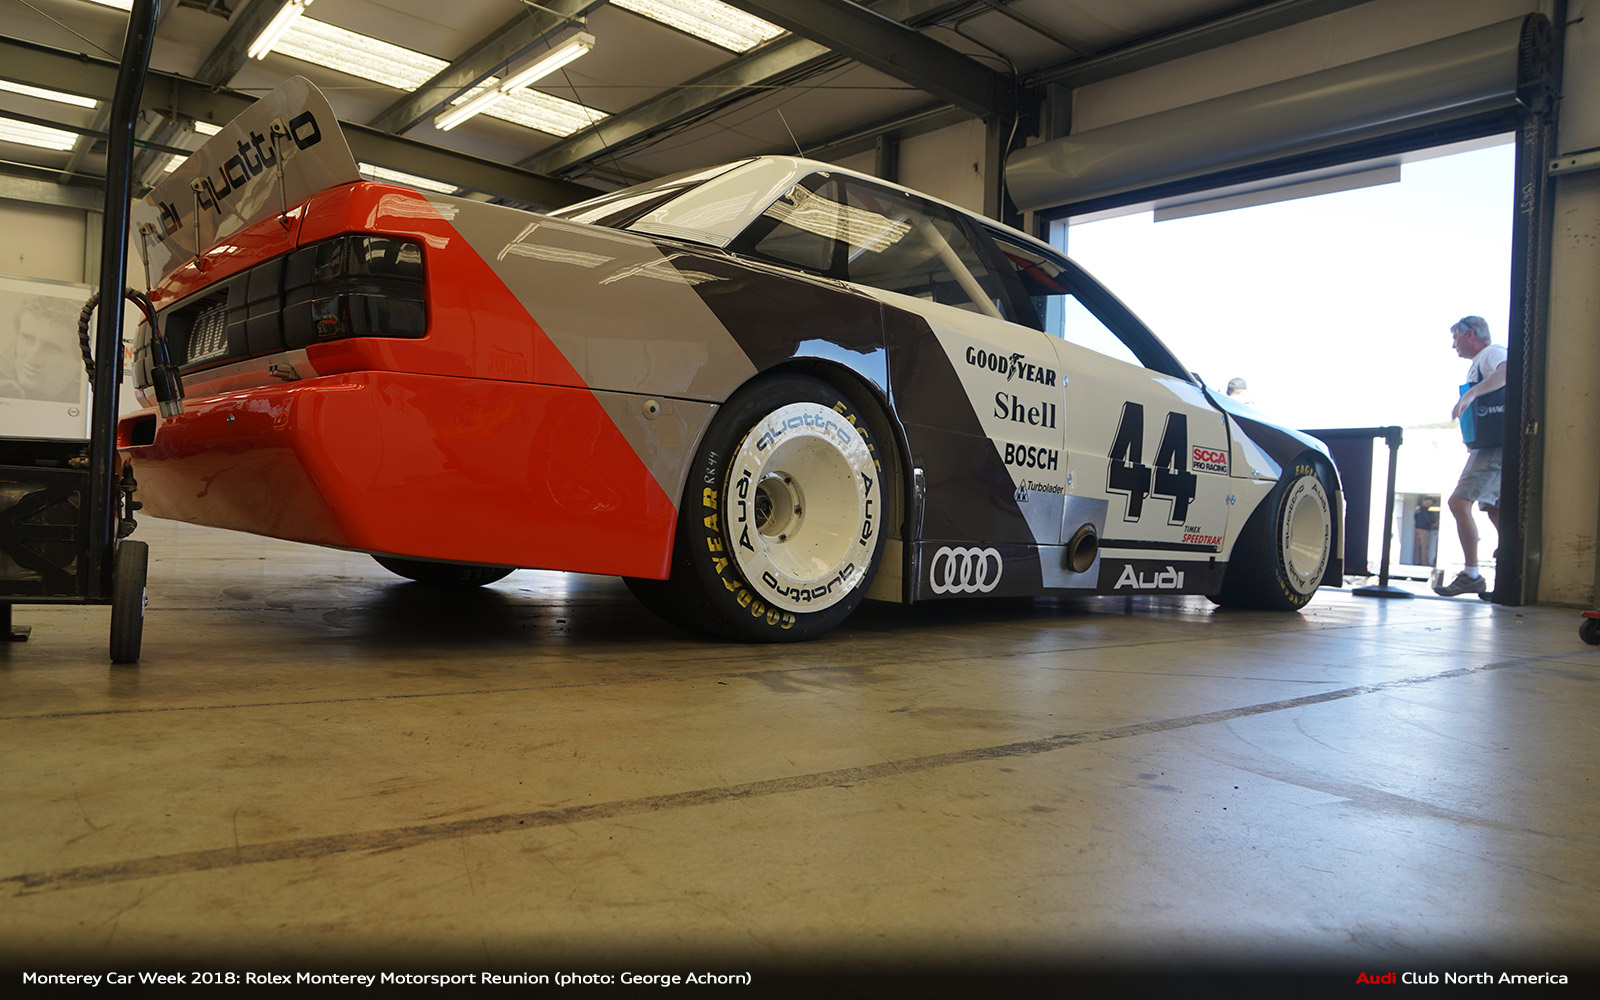 Photo Gallery: Rolex Monterey Motorsport Reunion, Monterey Car Week